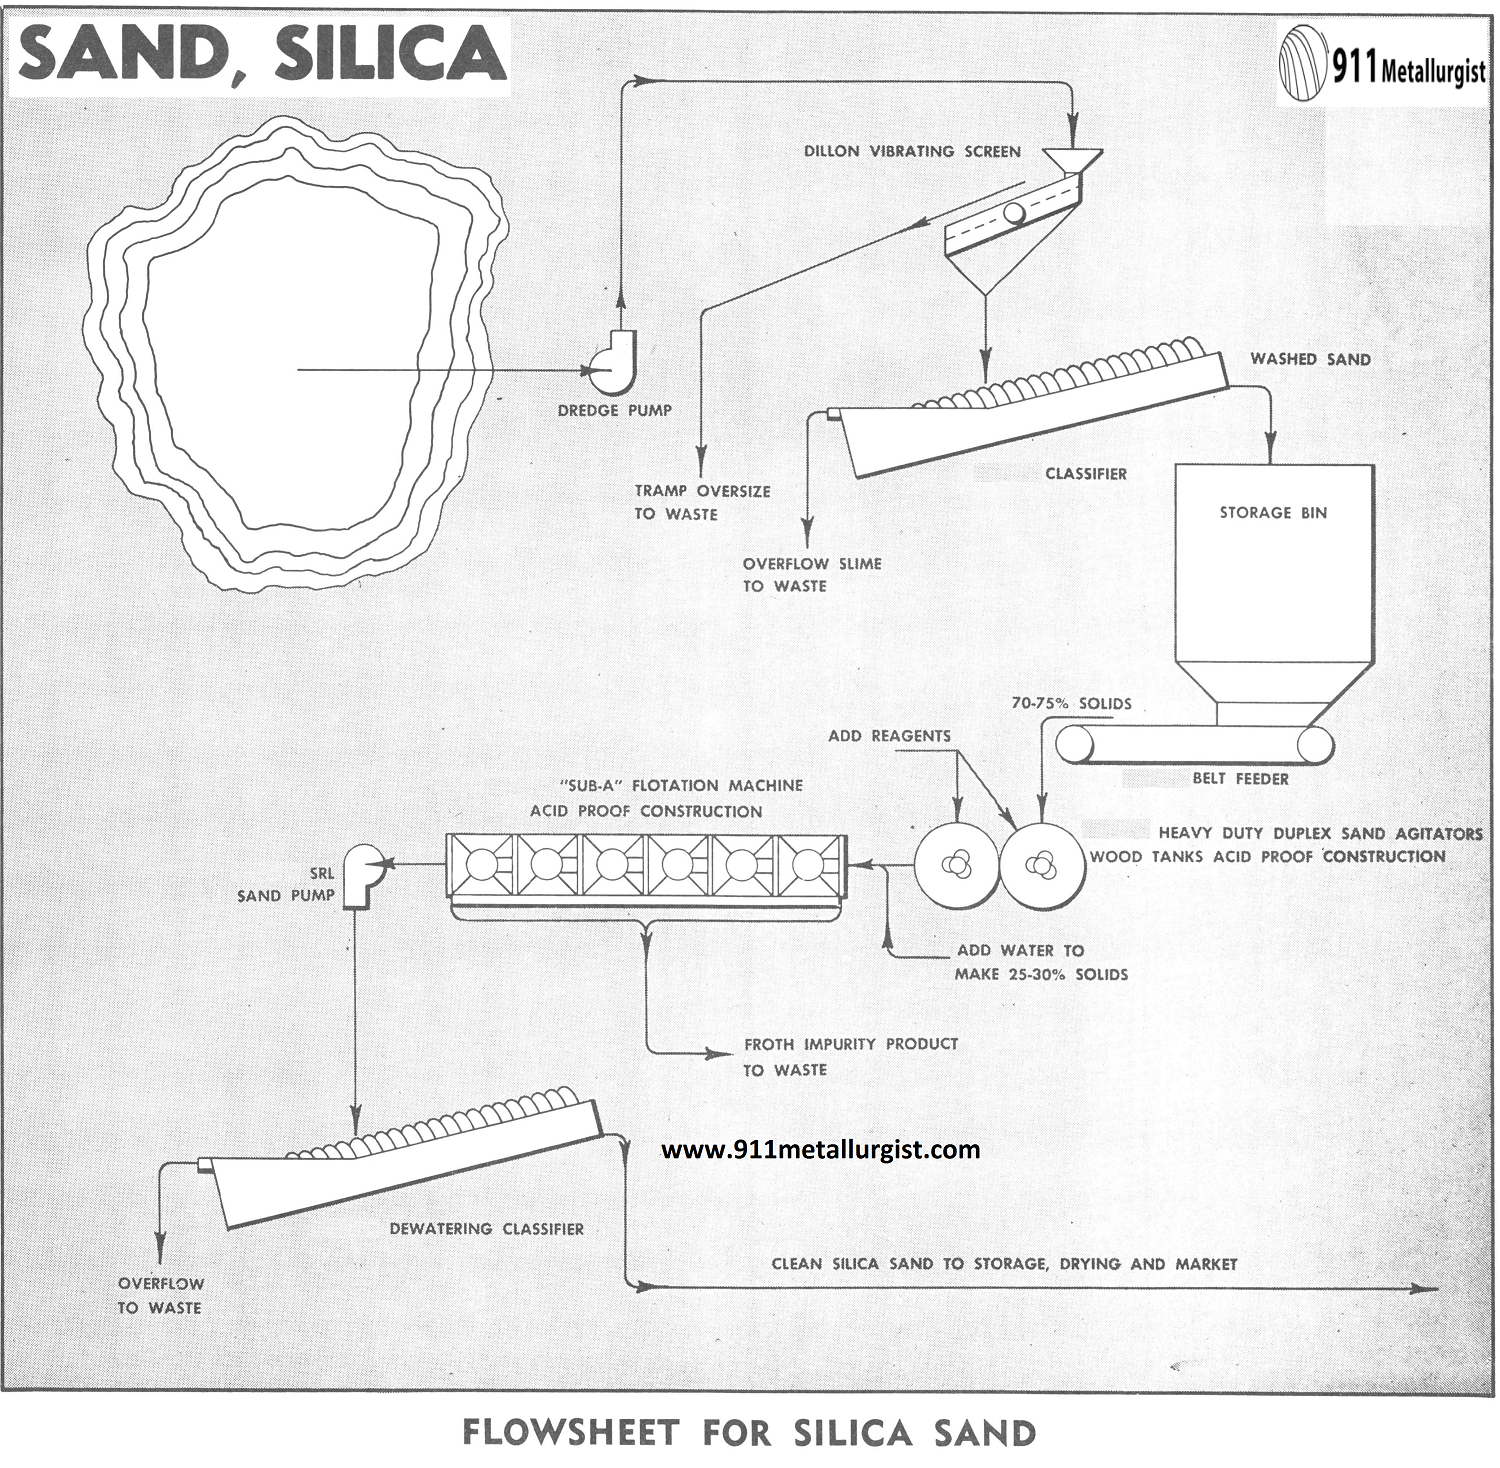 Flowsheet for Silica Sand